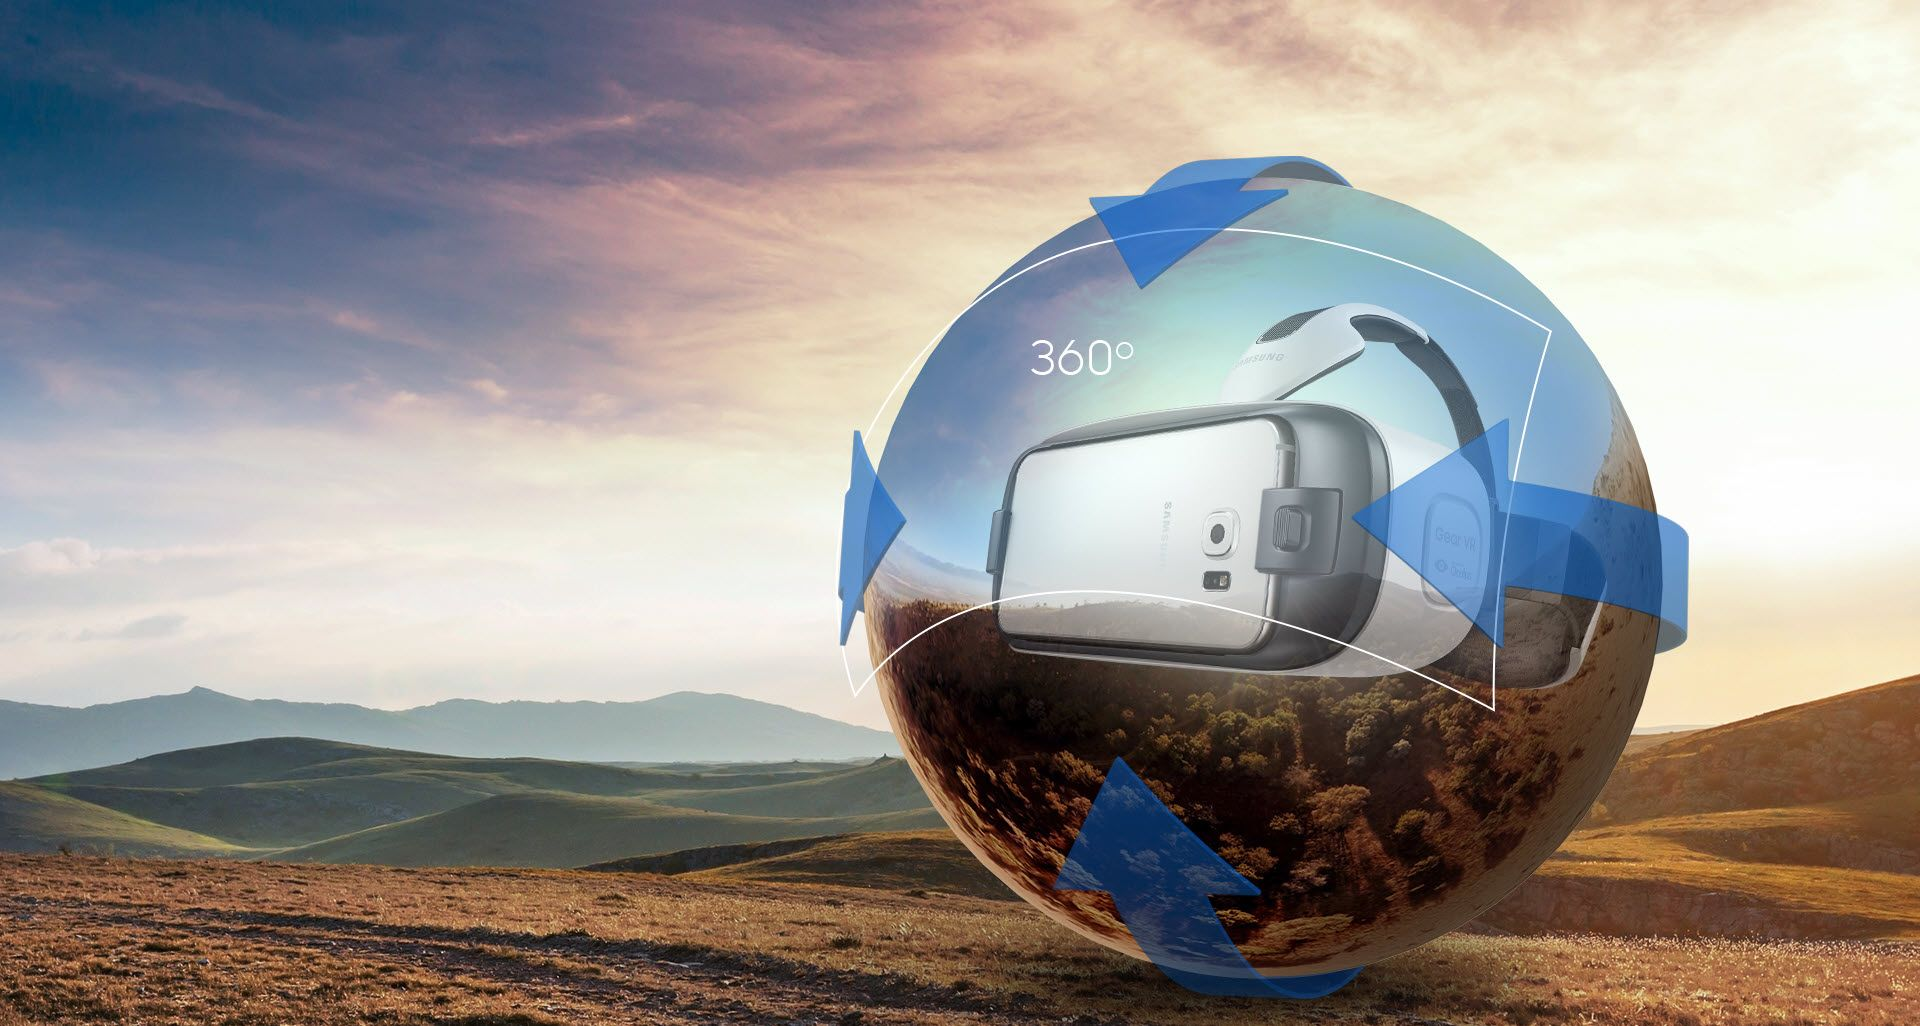 360 Camera Review Amp Purchase Report Guide 360 Video Image Panorama This Guide Amp Report Aims To Index A Vr Camera Camera Buying Guide Camera Reviews